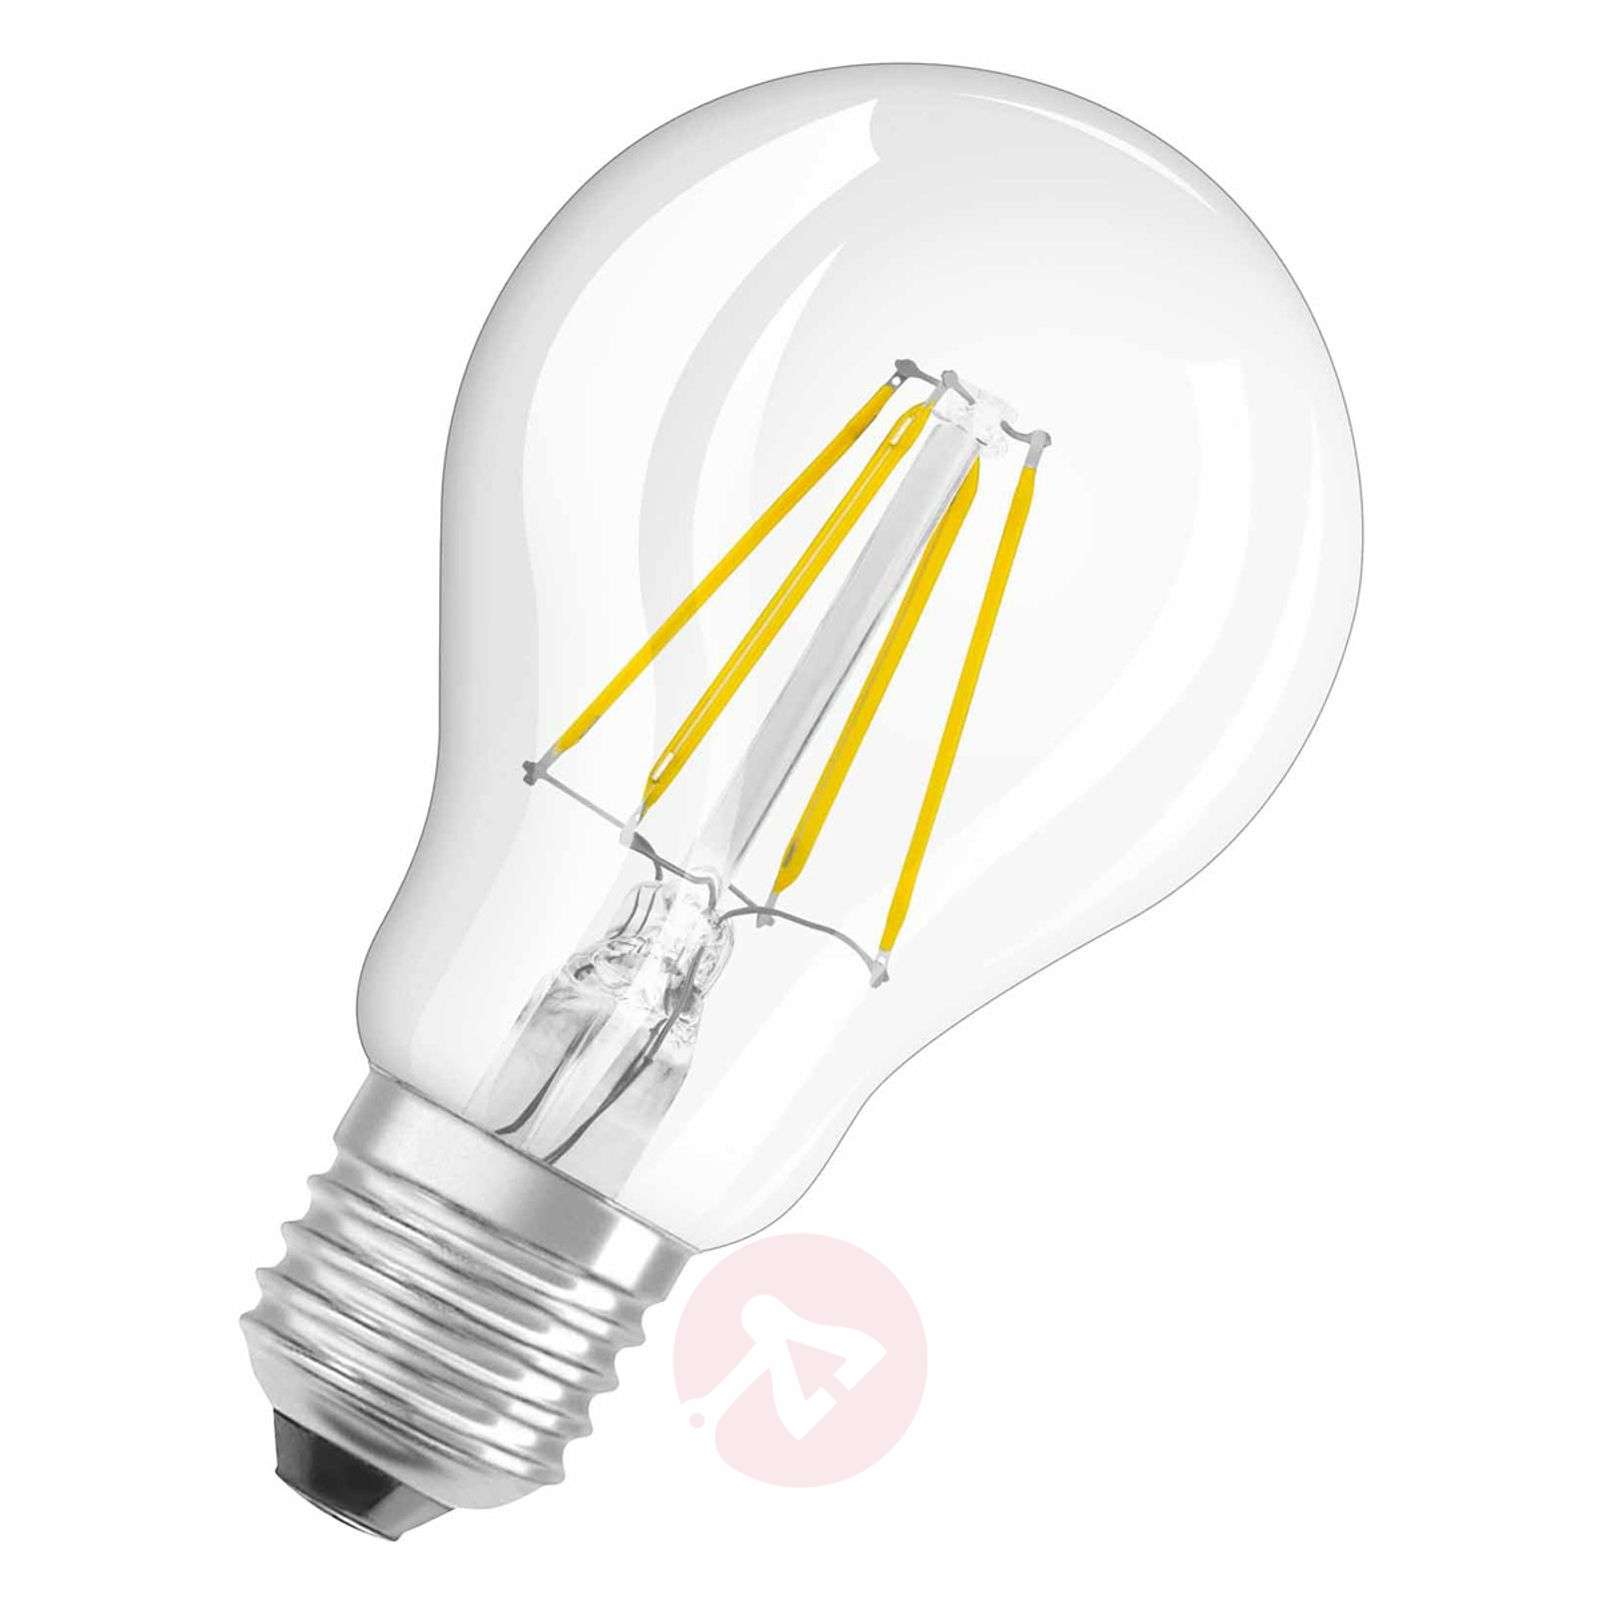 E27 4 W 827 filament LED bulb, set of two-7260964-01